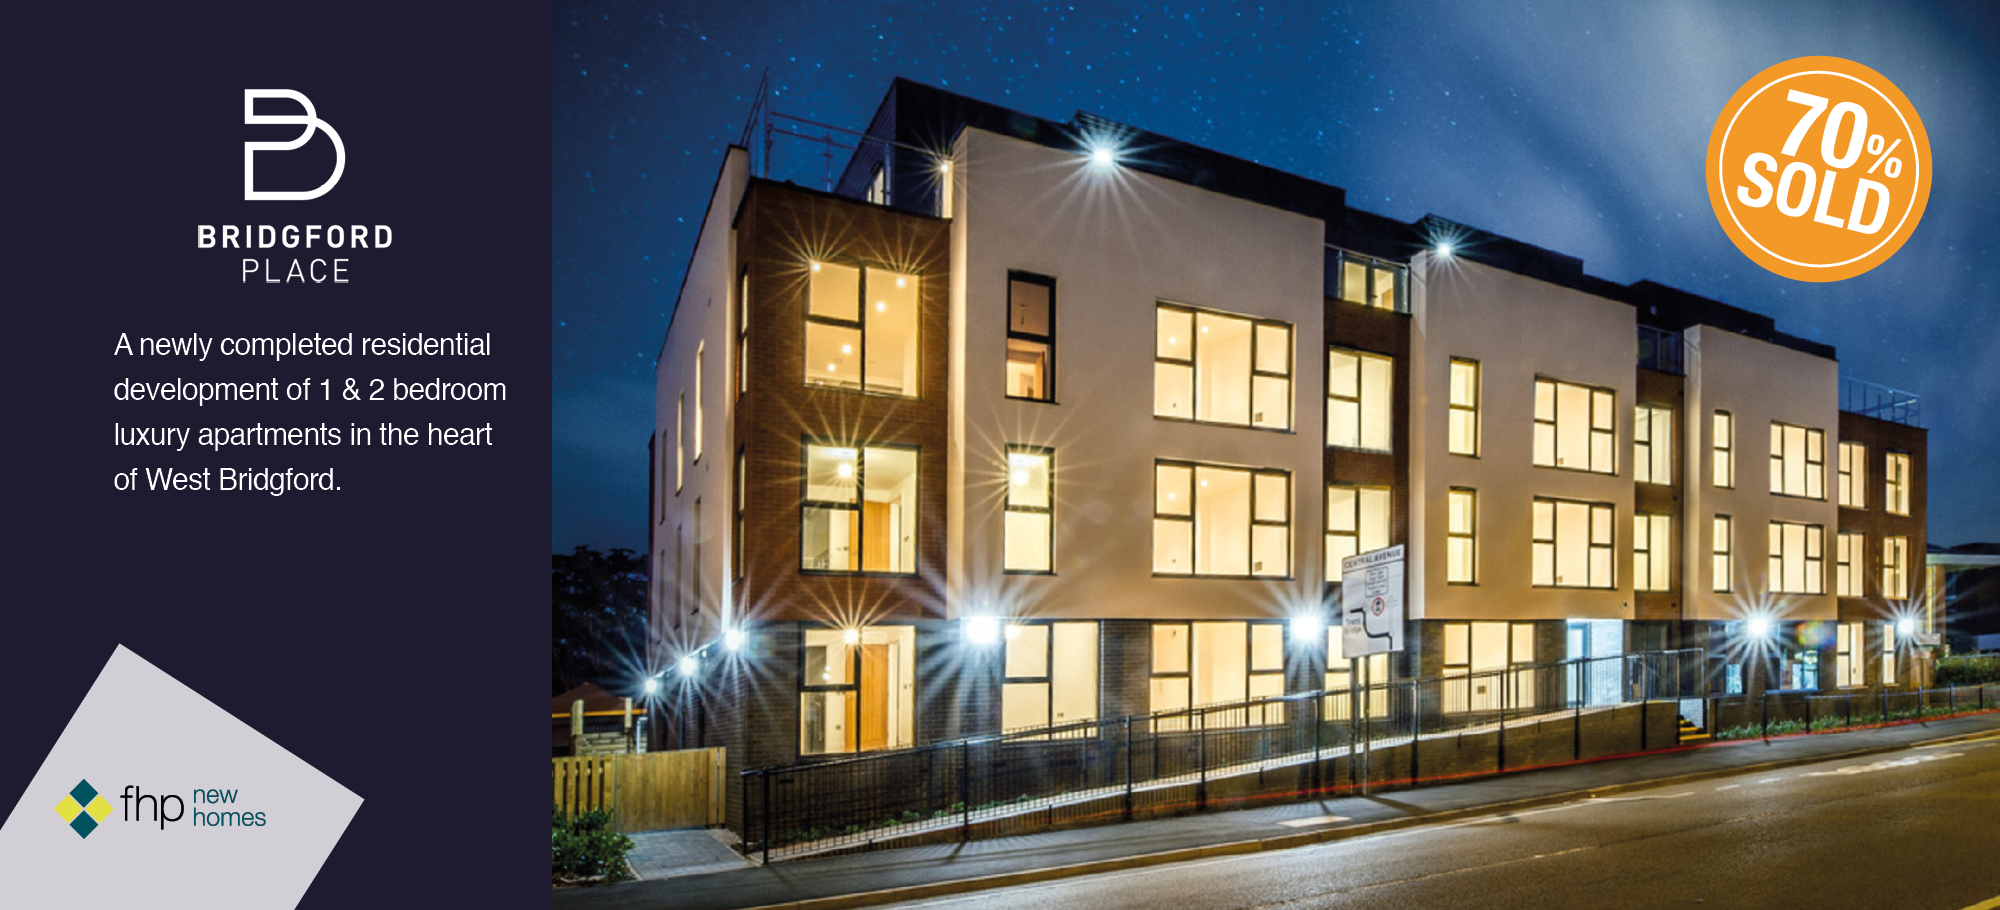 luxury apartments west bridgford